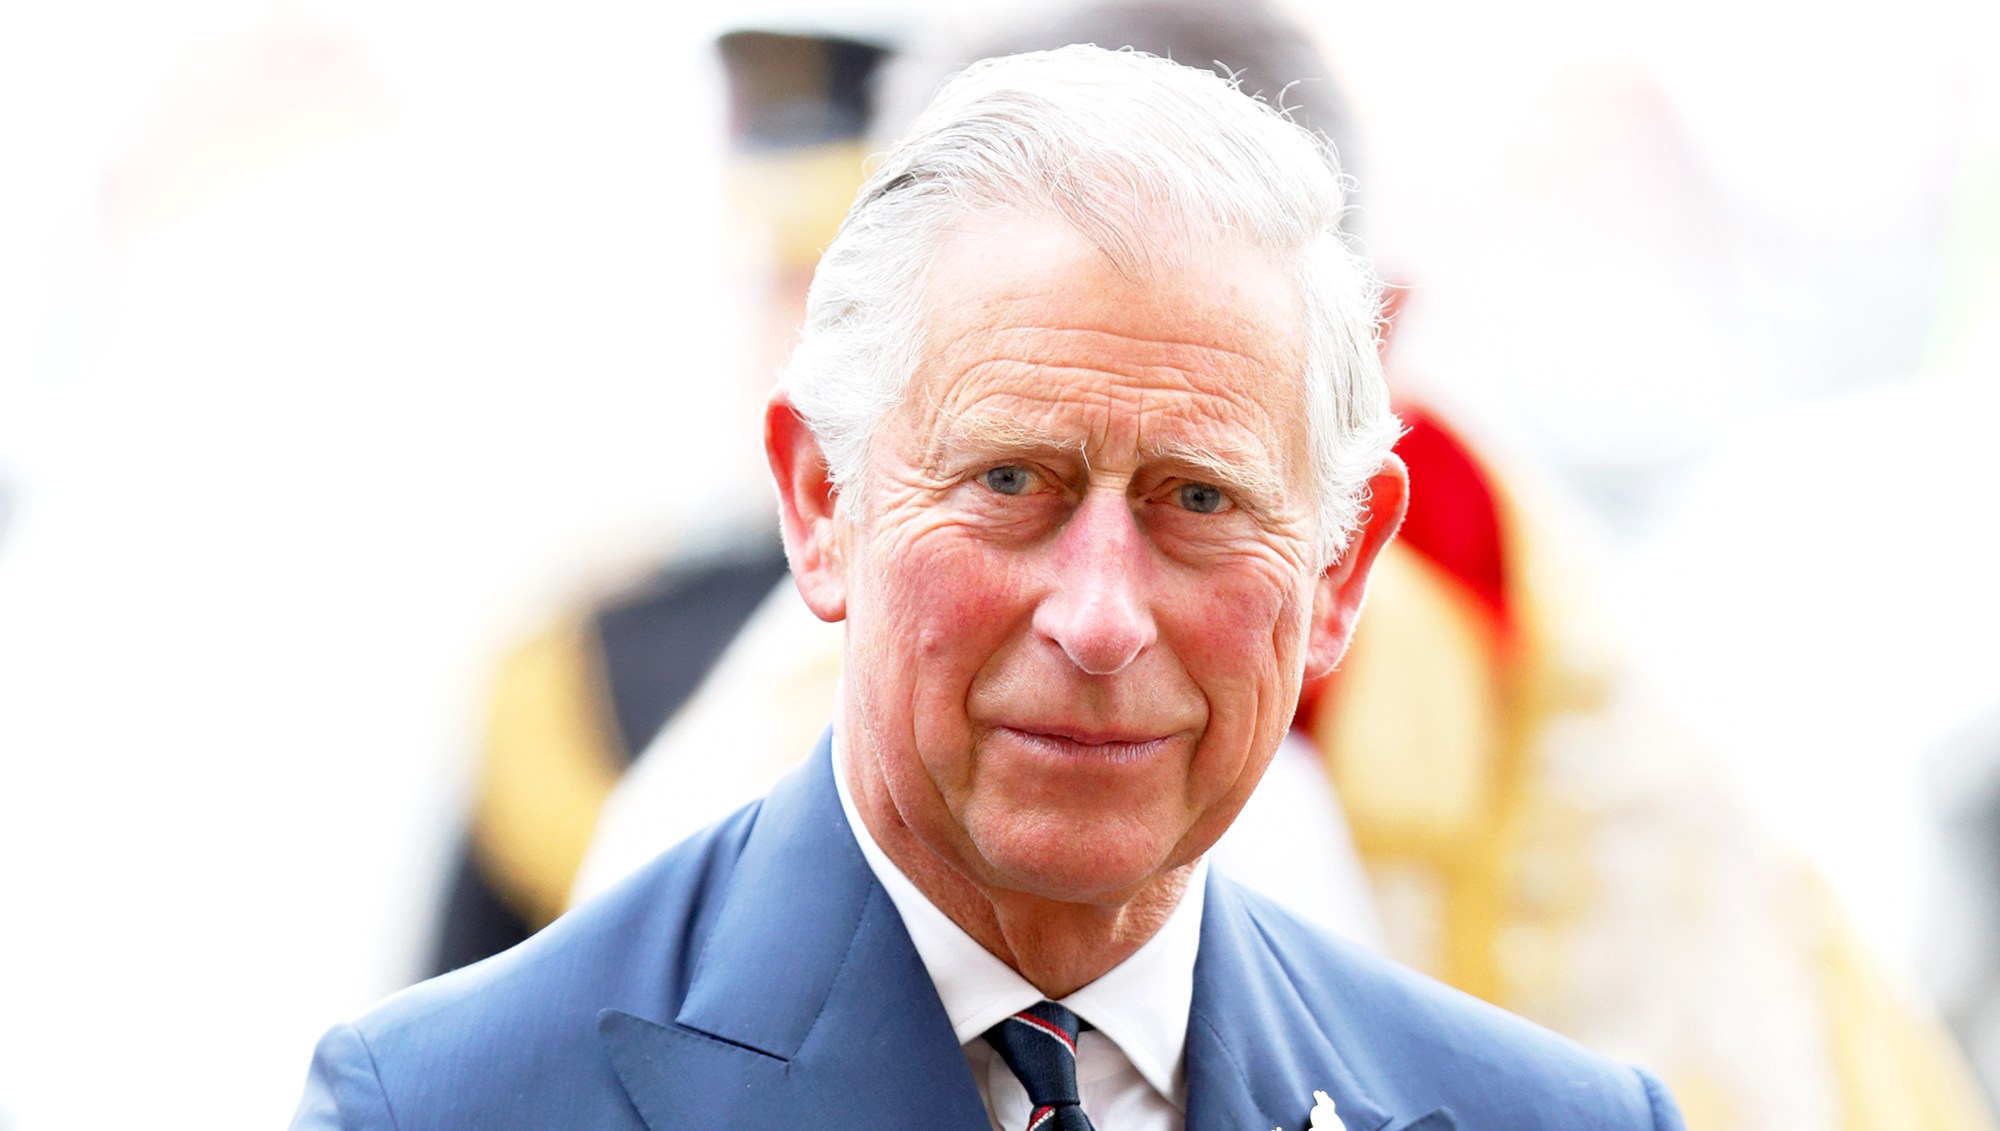 Prince Charles, Prince of Wales attends the 70th Anniversary of VE Day at Westminster Abbey in London, England.